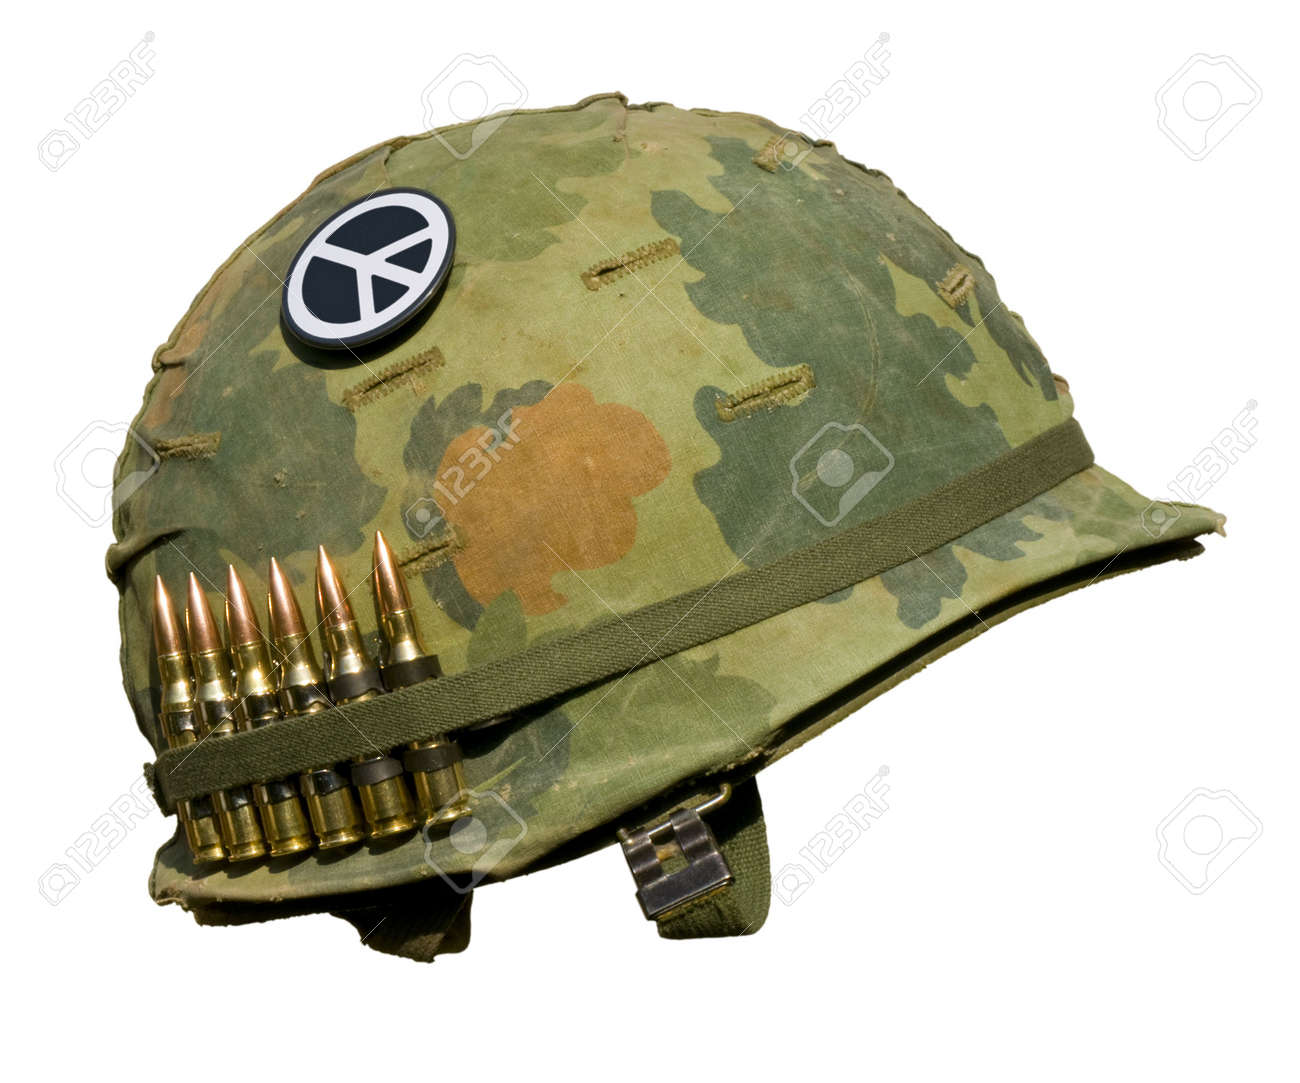 A US military helmet with an M1 Mitchell pattern camouflage cover from the Vietnam war, with six rounds of 7.62mm ammunition and a peace symbol button. Stock Photo - 5783284